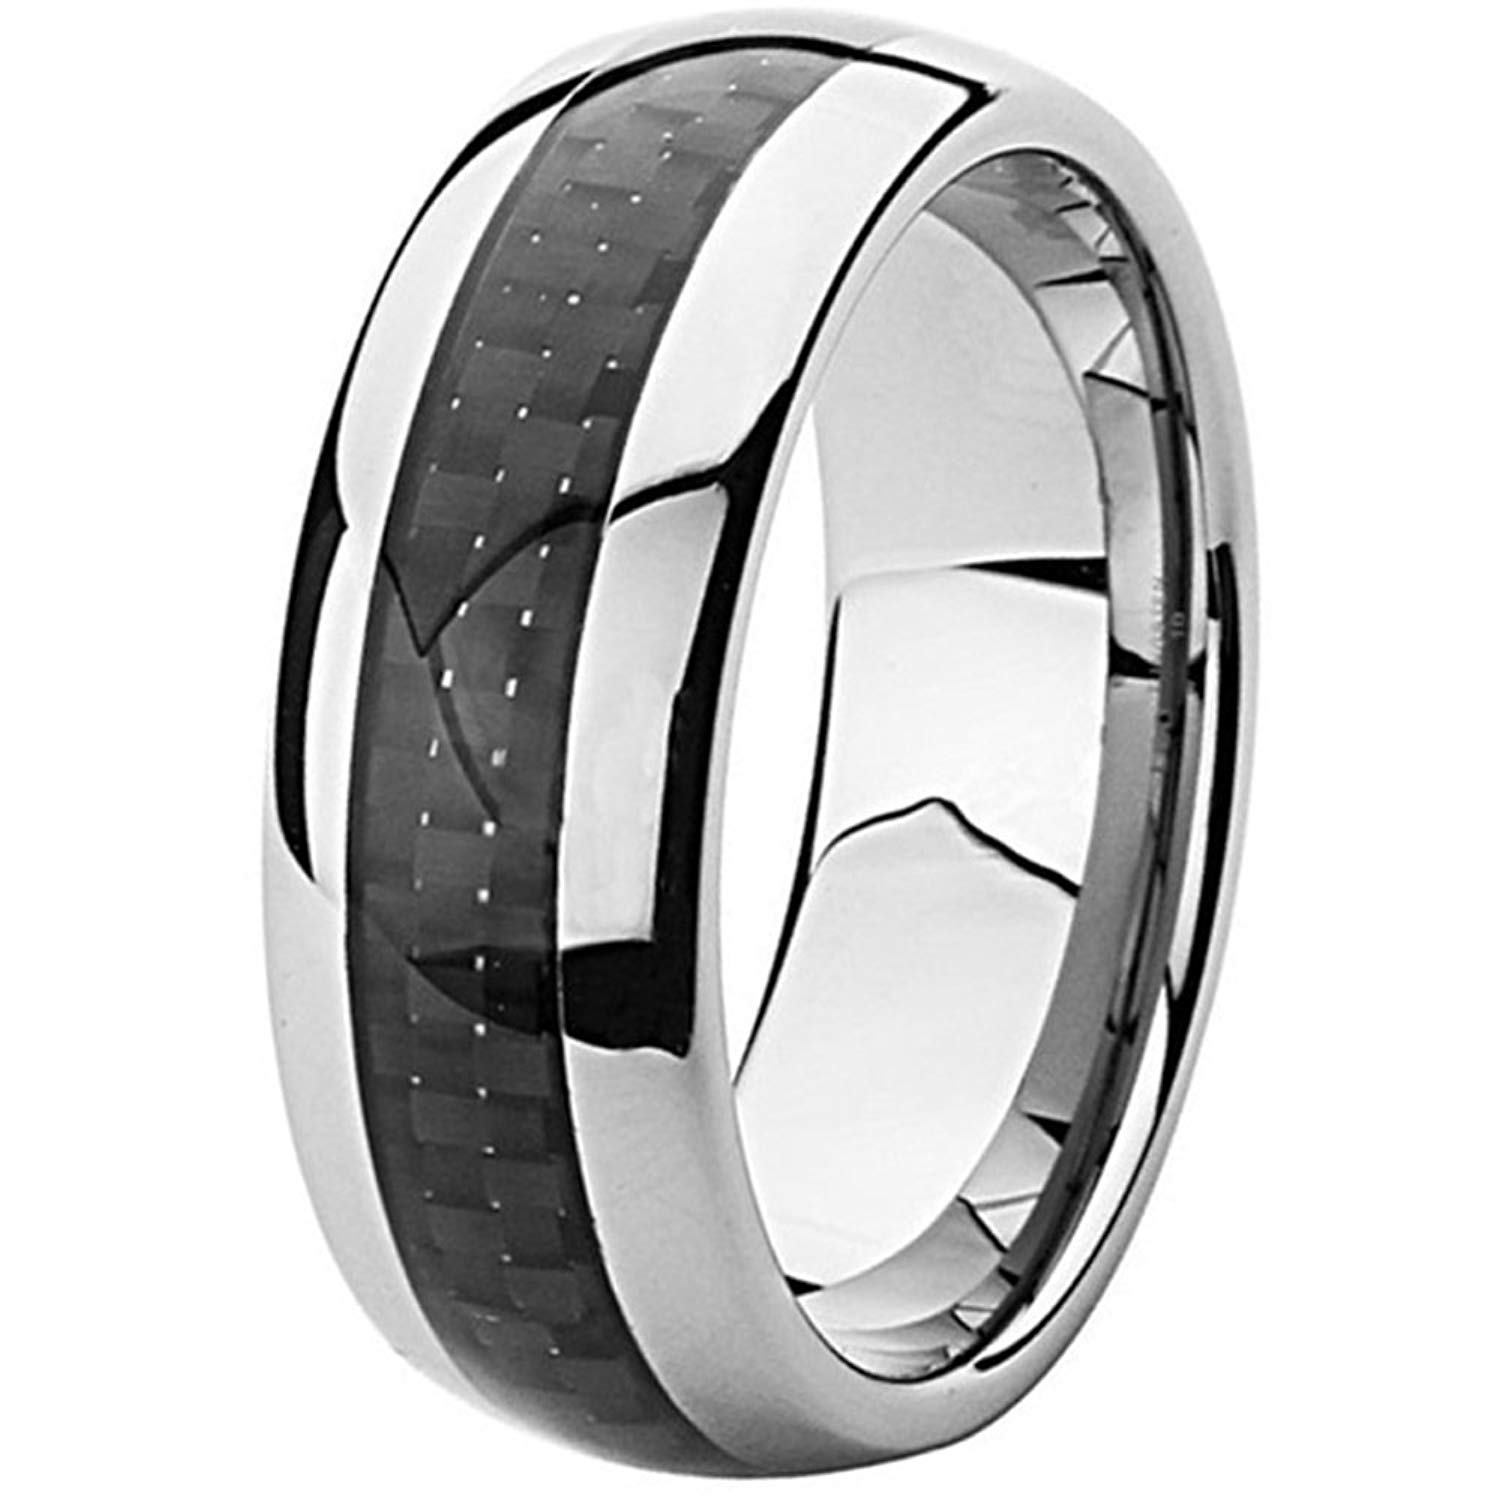 Black Wedding Bands.Cheap Black And Silver Mens Wedding Bands Find Black And Silver